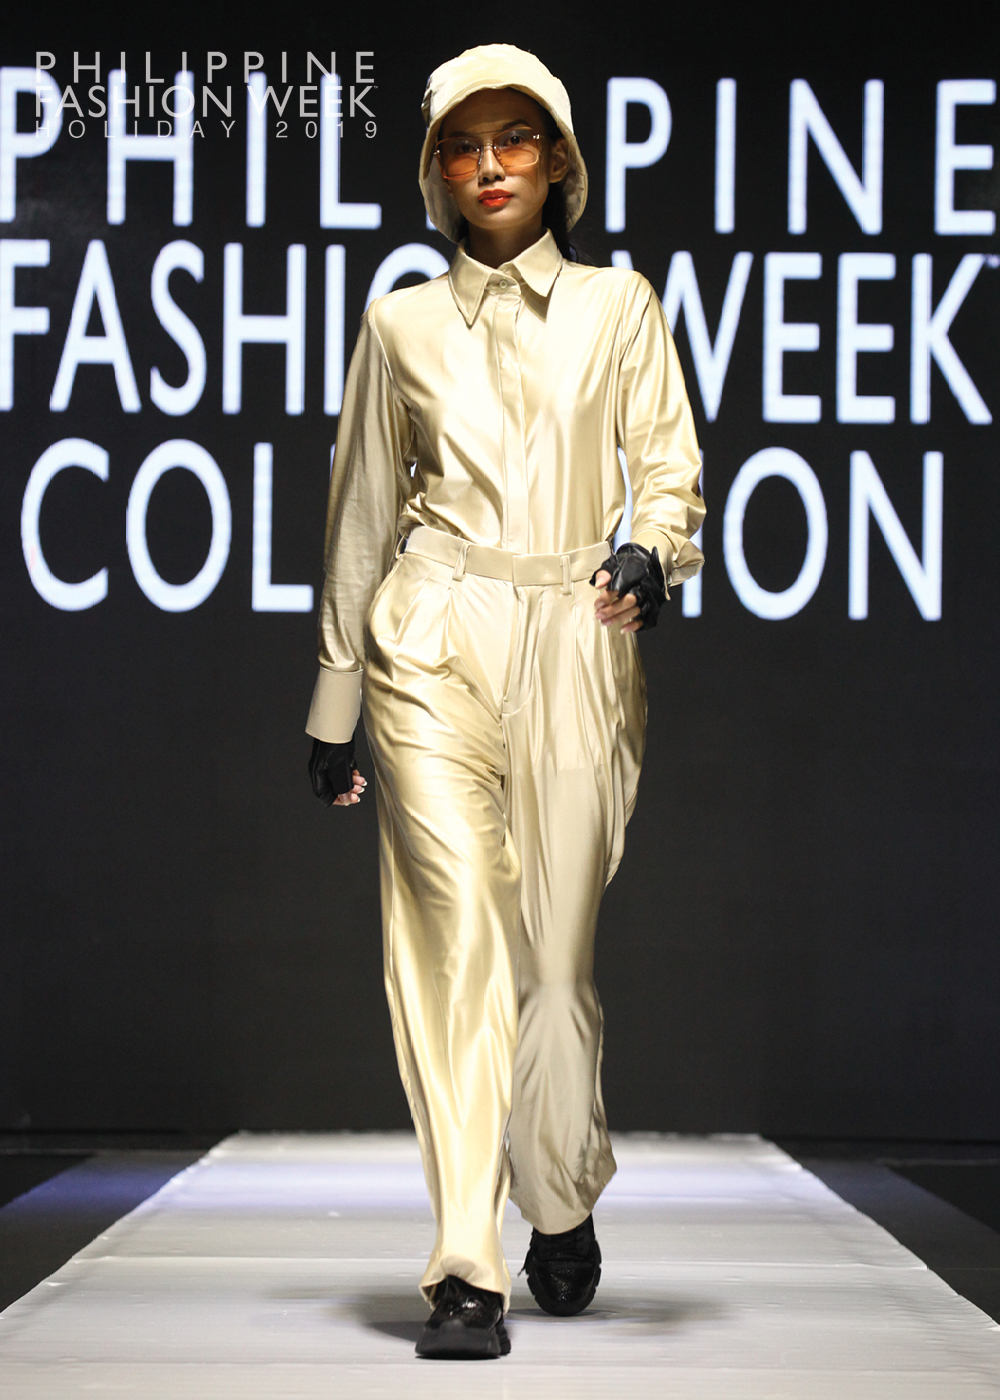 PhFW_collection show.jpg